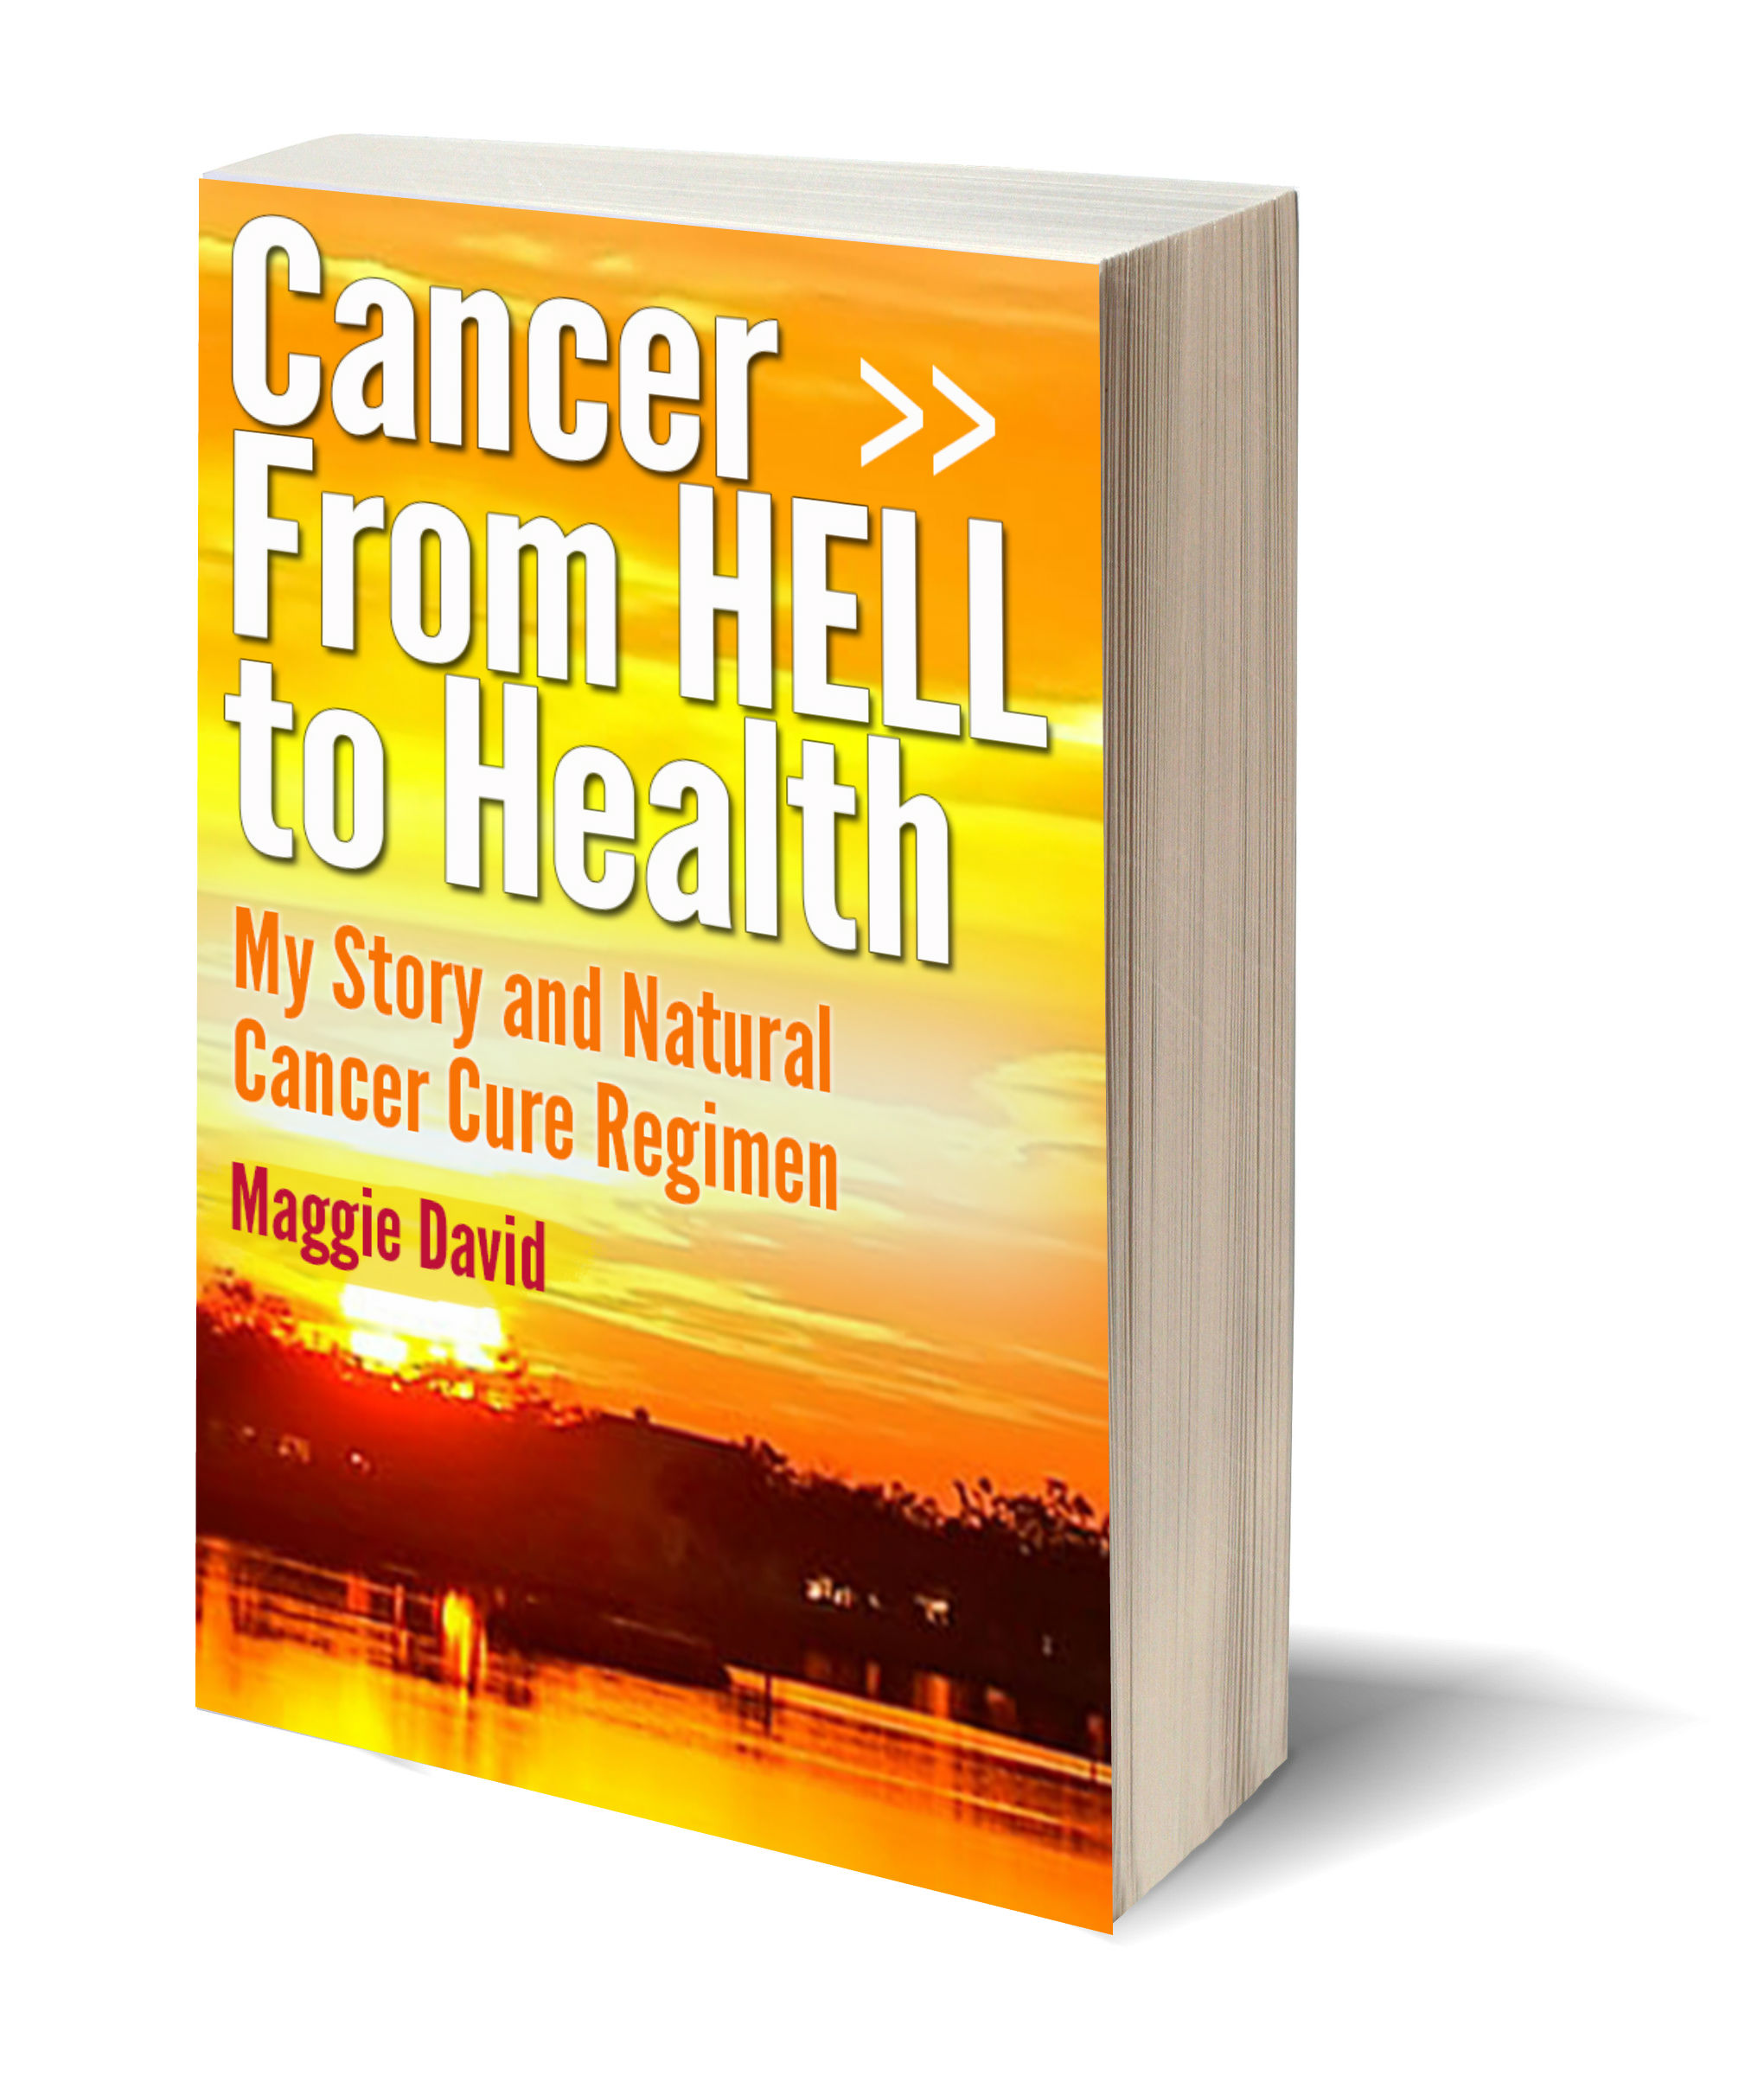 Cancer from hell to health 3D-Book-Template.jpg